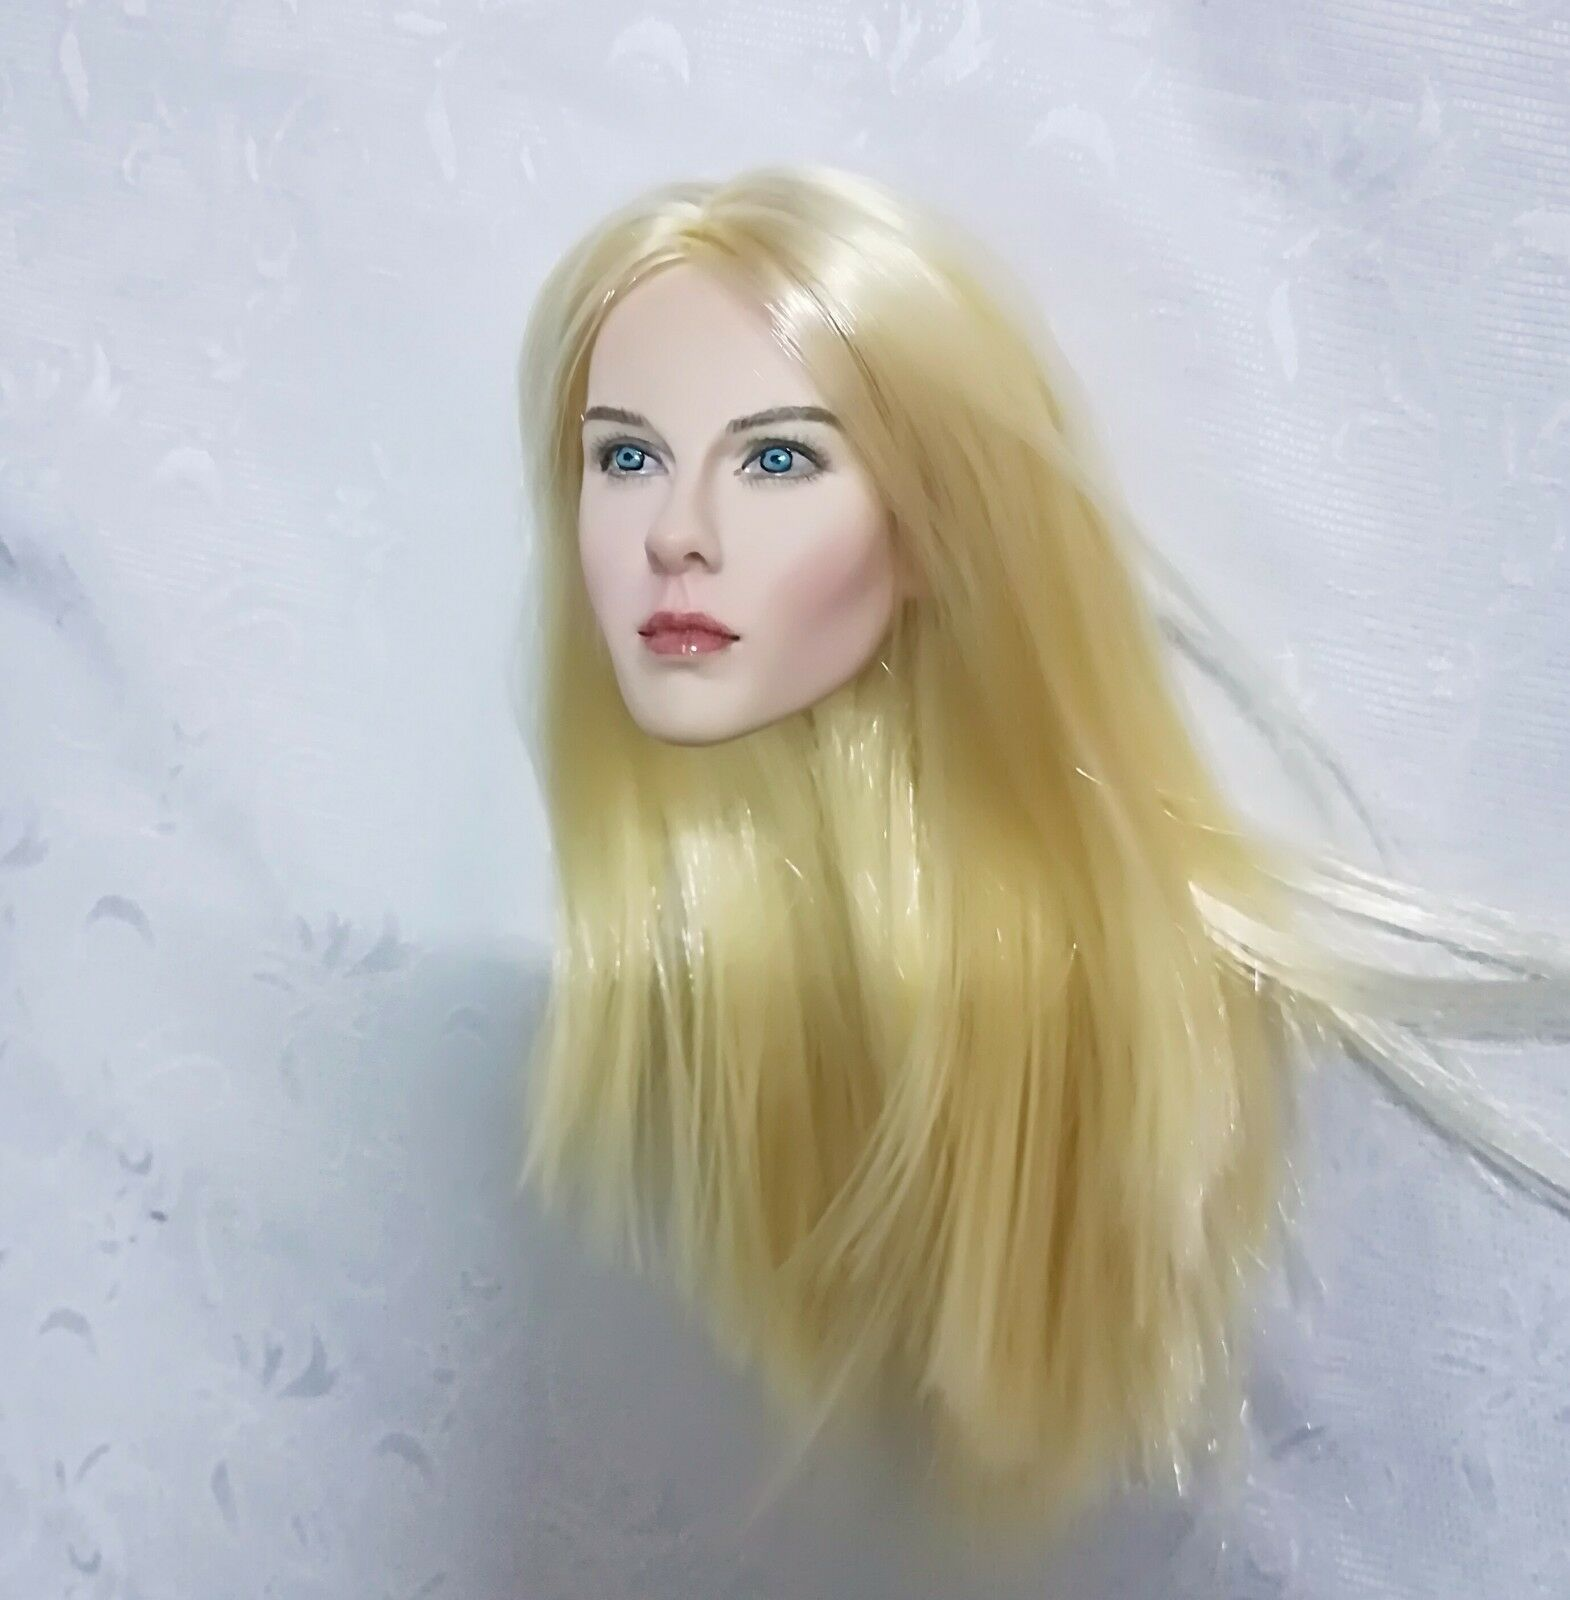 Ge Li Fang 1 6 Scale Figures The X-Files X-Files X-Files Head For 12  bluee Eyes Straight Hair d4881e